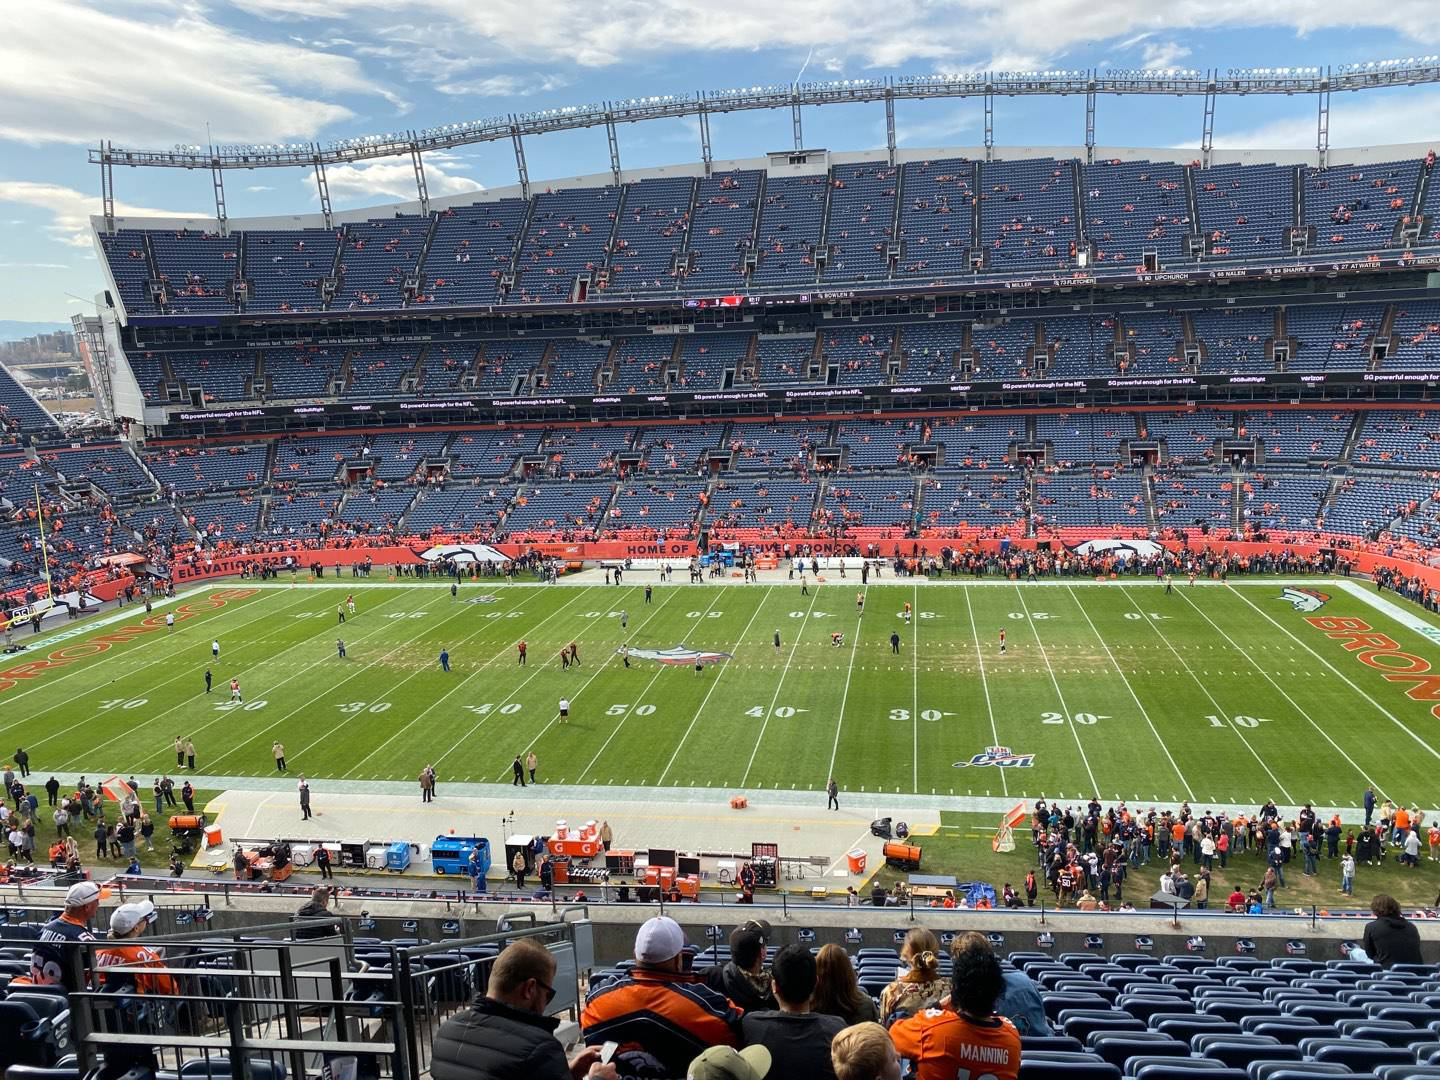 Empower Field at Mile High Stadium Section 335 Row 14 Seat 12